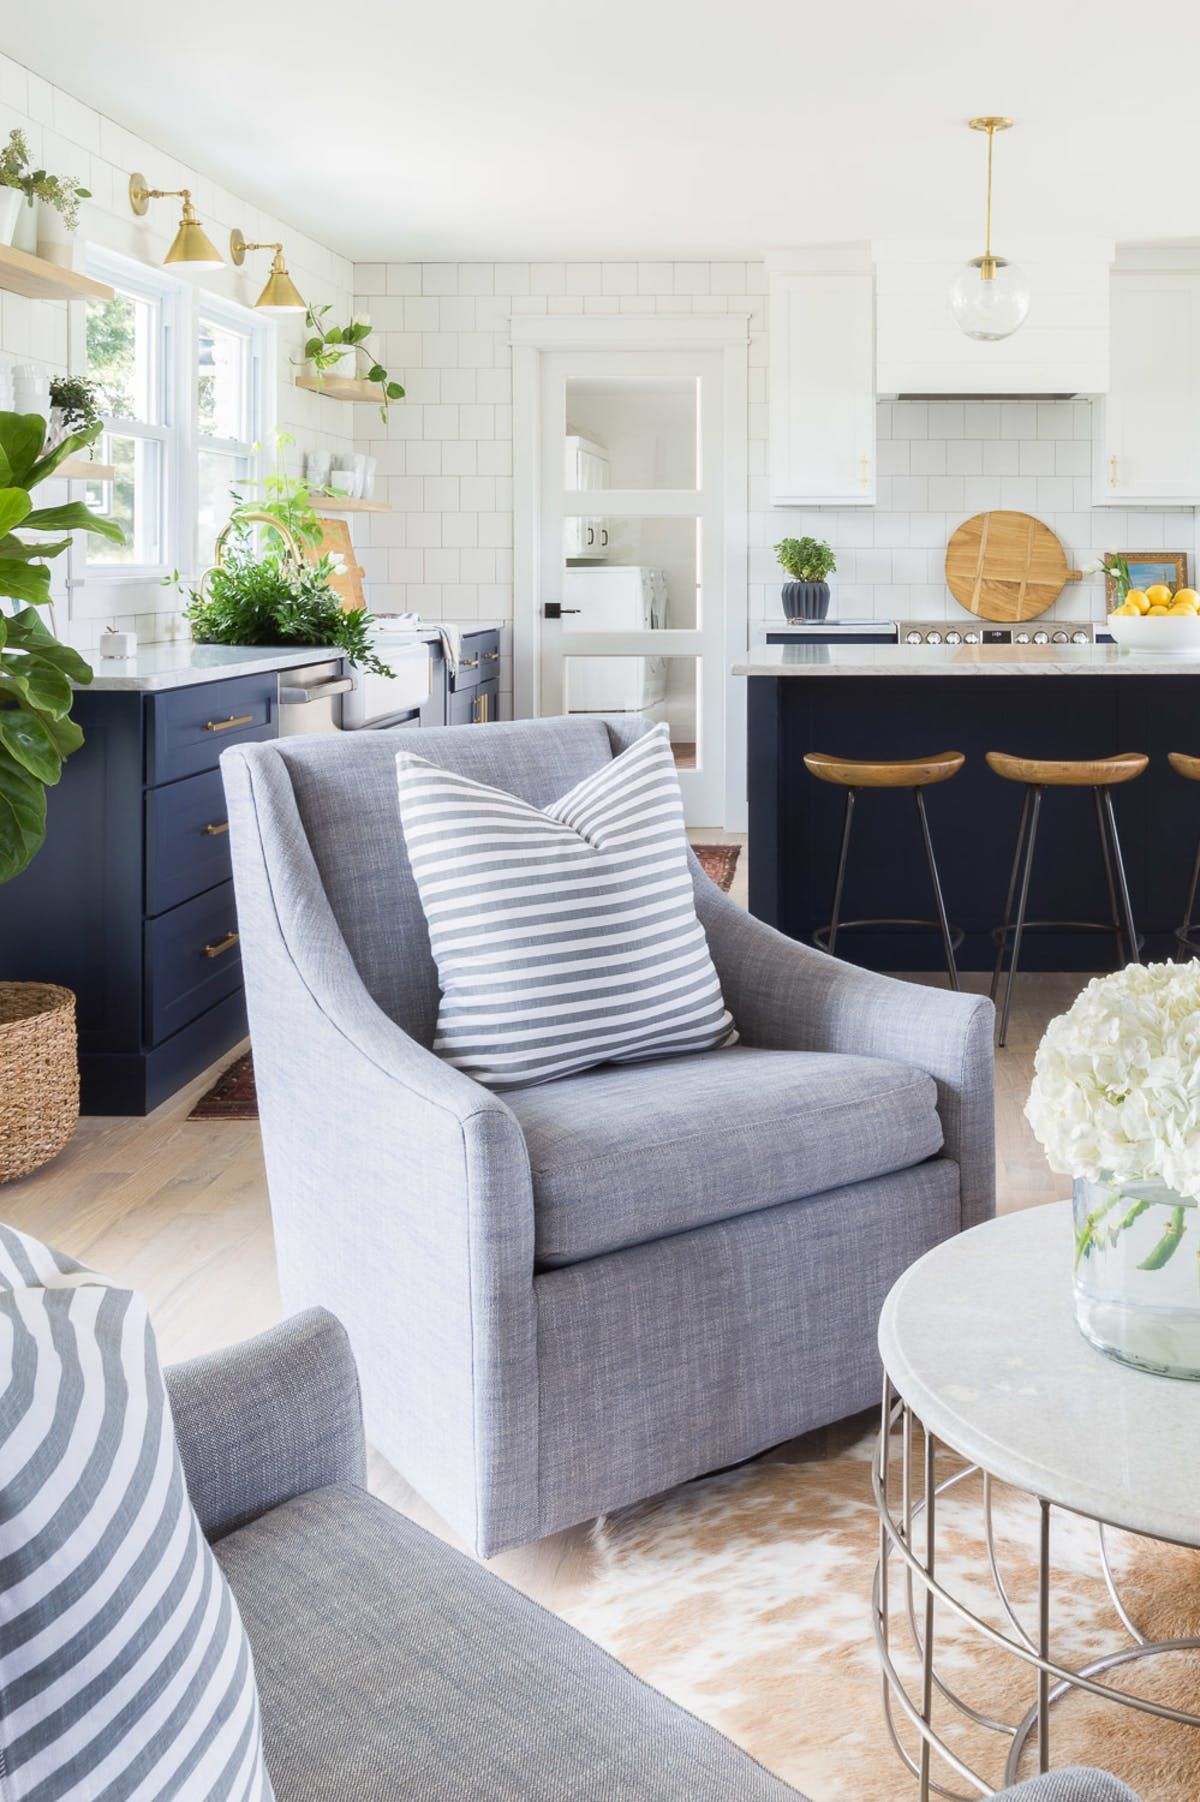 Kitchen Sitting Rooms Designs: 10 Homes That Prove Patriotic Is Pretty All Year Round